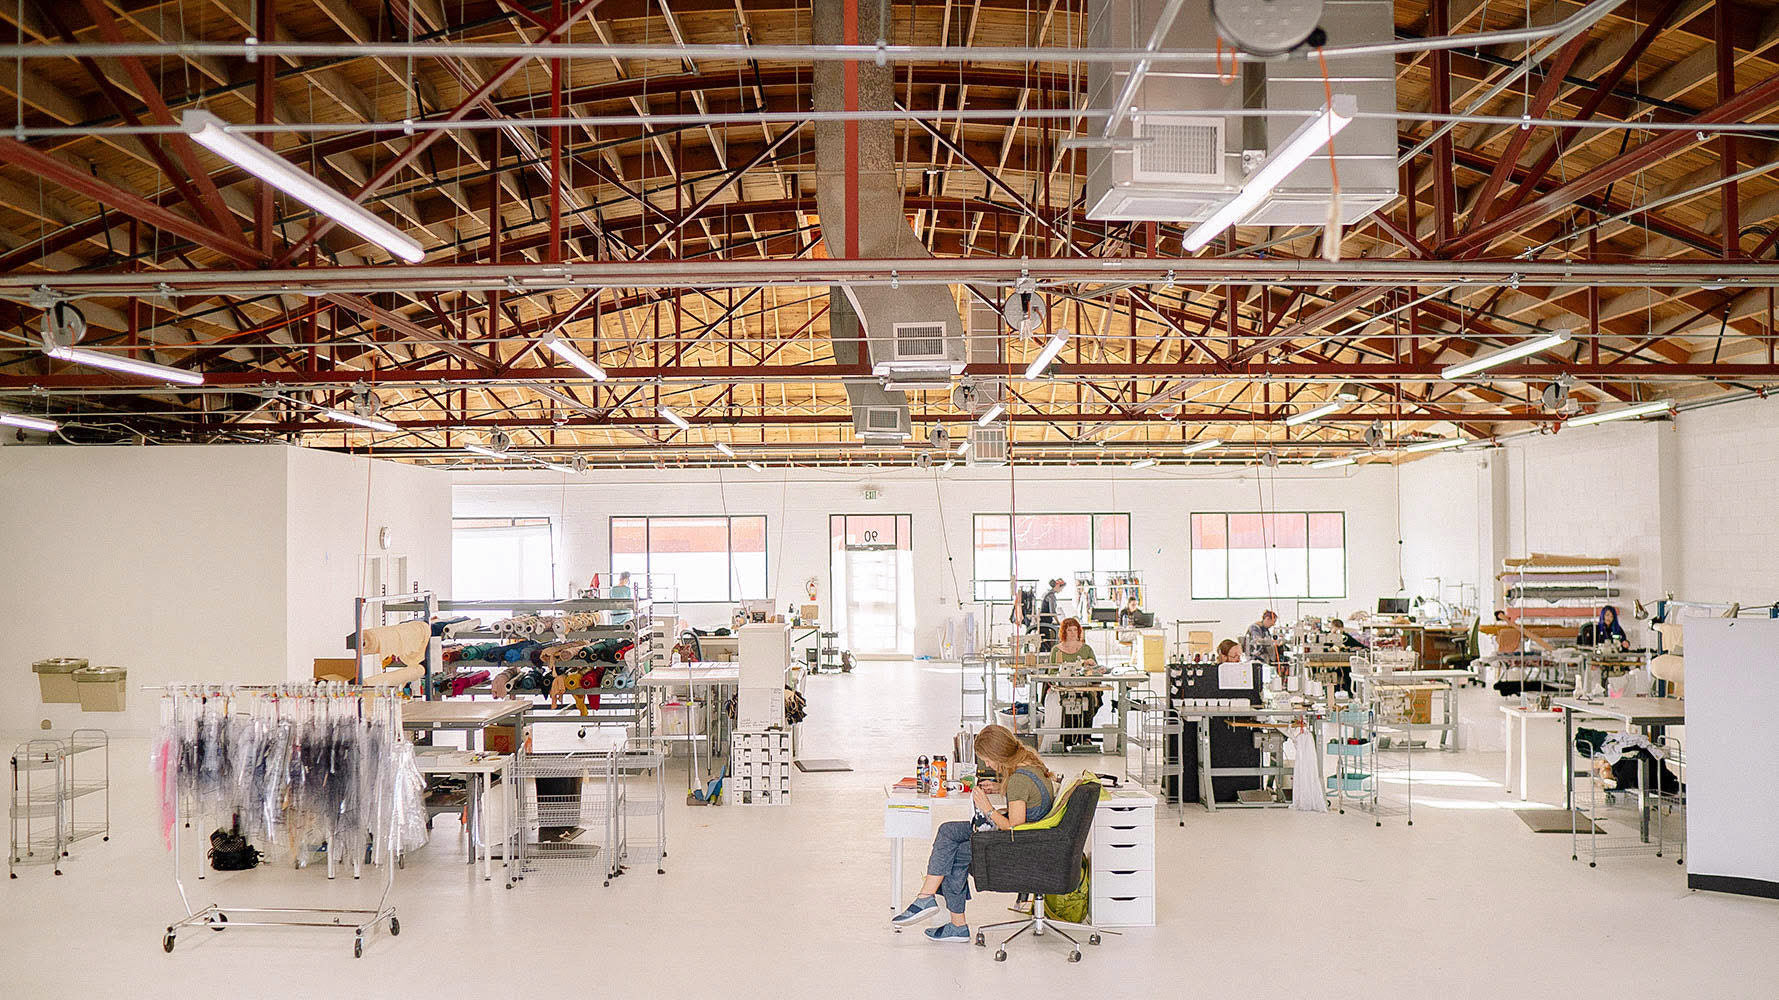 Large workshop space with white walls & floors and a vaulted wooden ceiling. The room is filled with racks of fabric, cutting tables, and industrial sewing machines.